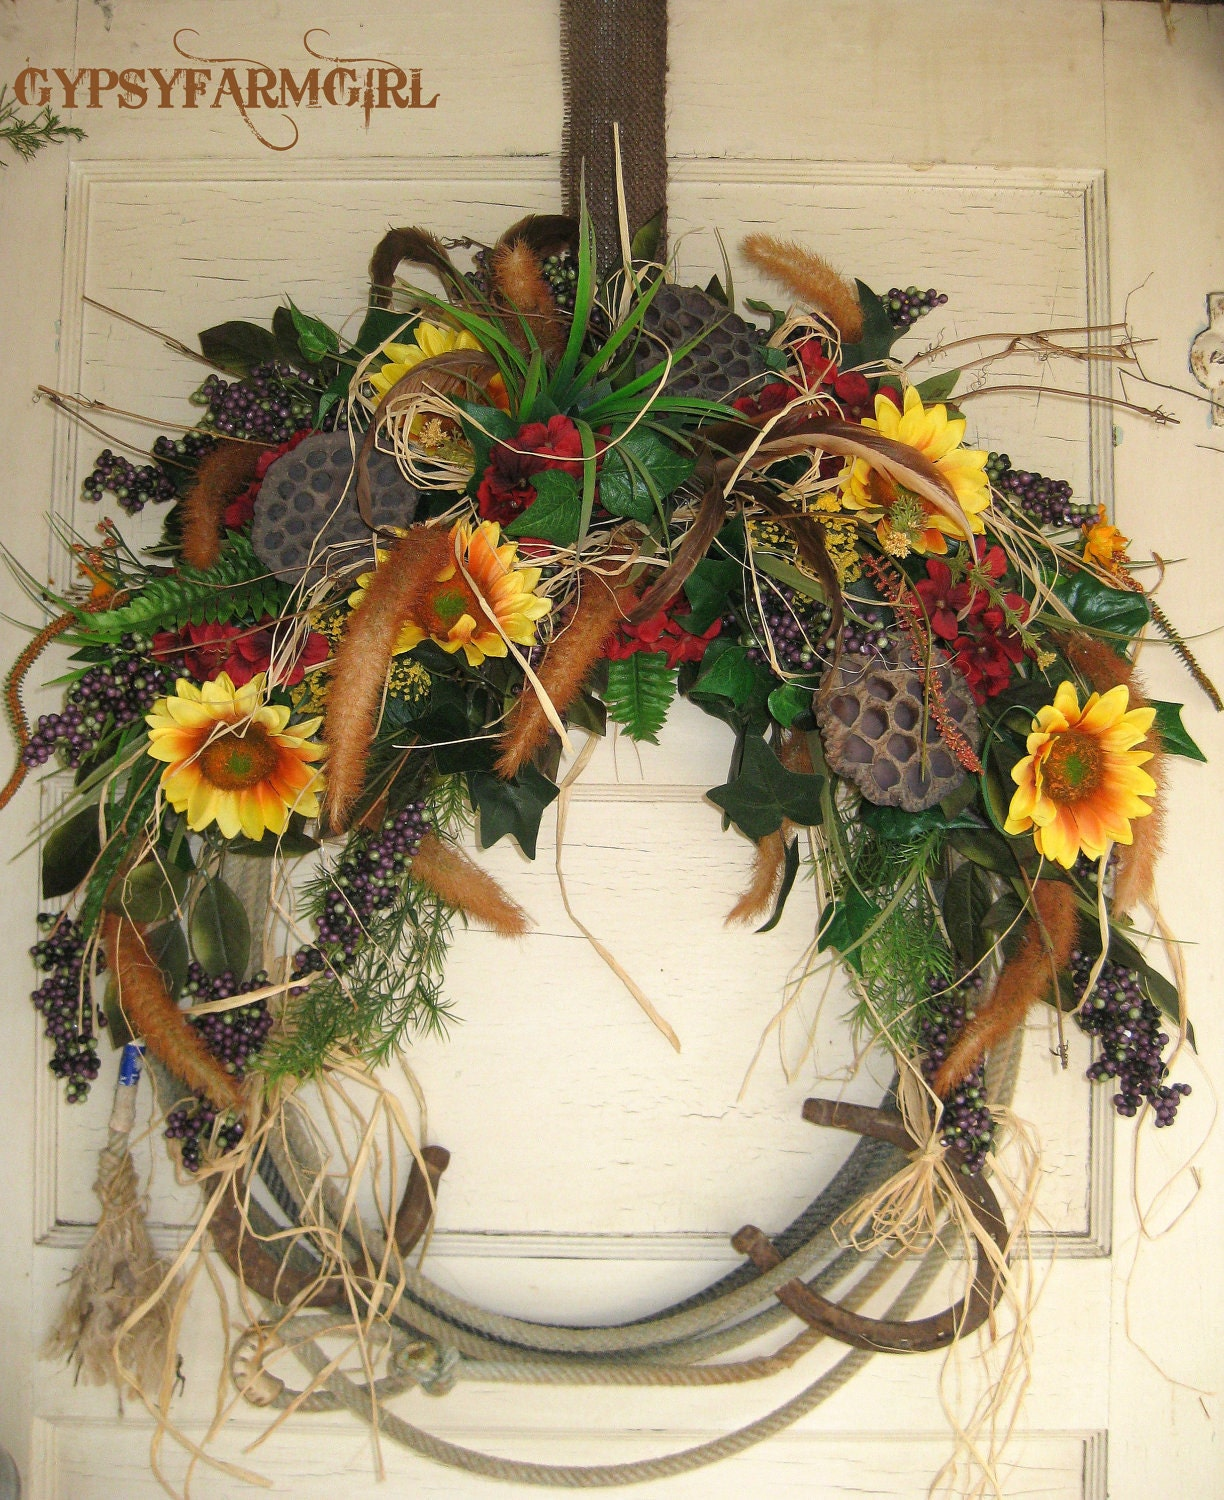 Home Decor Wreaths: Rope Wreath With Horseshoes Cowboy Western Home Decor On